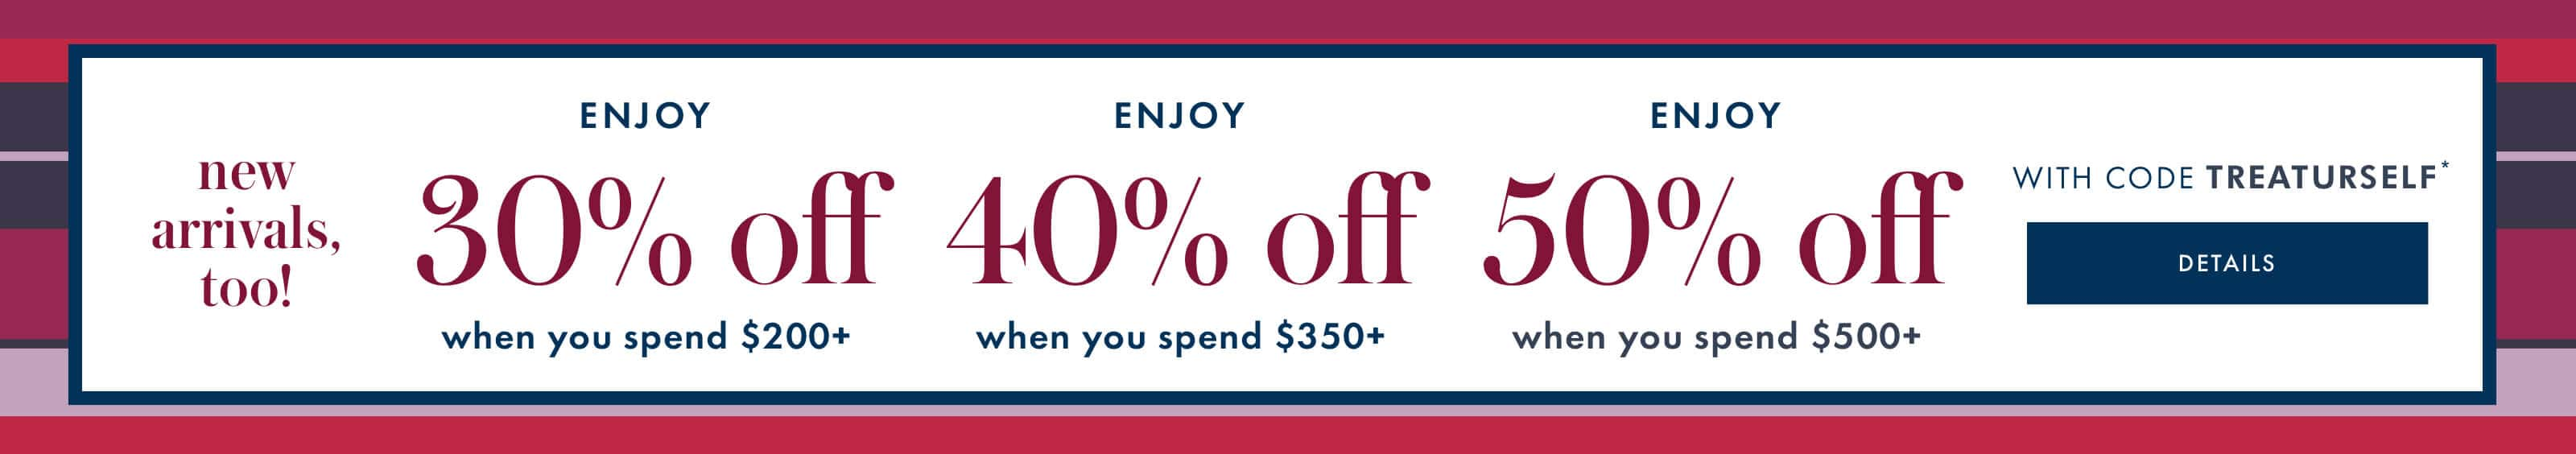 new arrivals, too! ENJOY 30% off when you spend $200+. ENJOY 40% off when you spend $350+. ENJOY 50% off when you spend $500+. WITH CODE TREATURSELF. details.